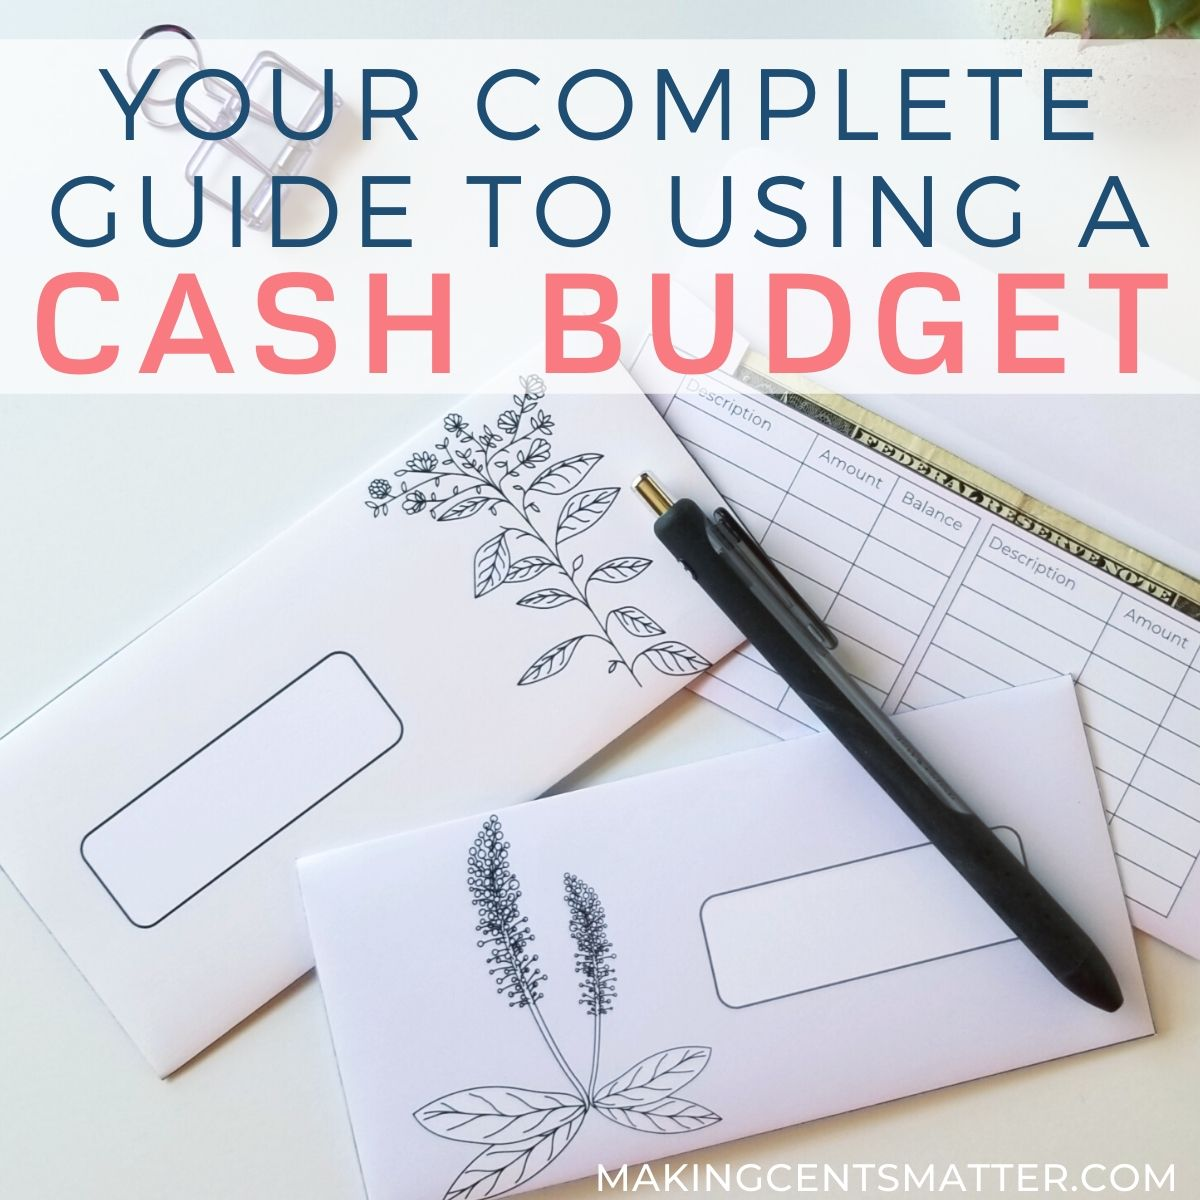 Your Complete Guide To Using A Cash Budget